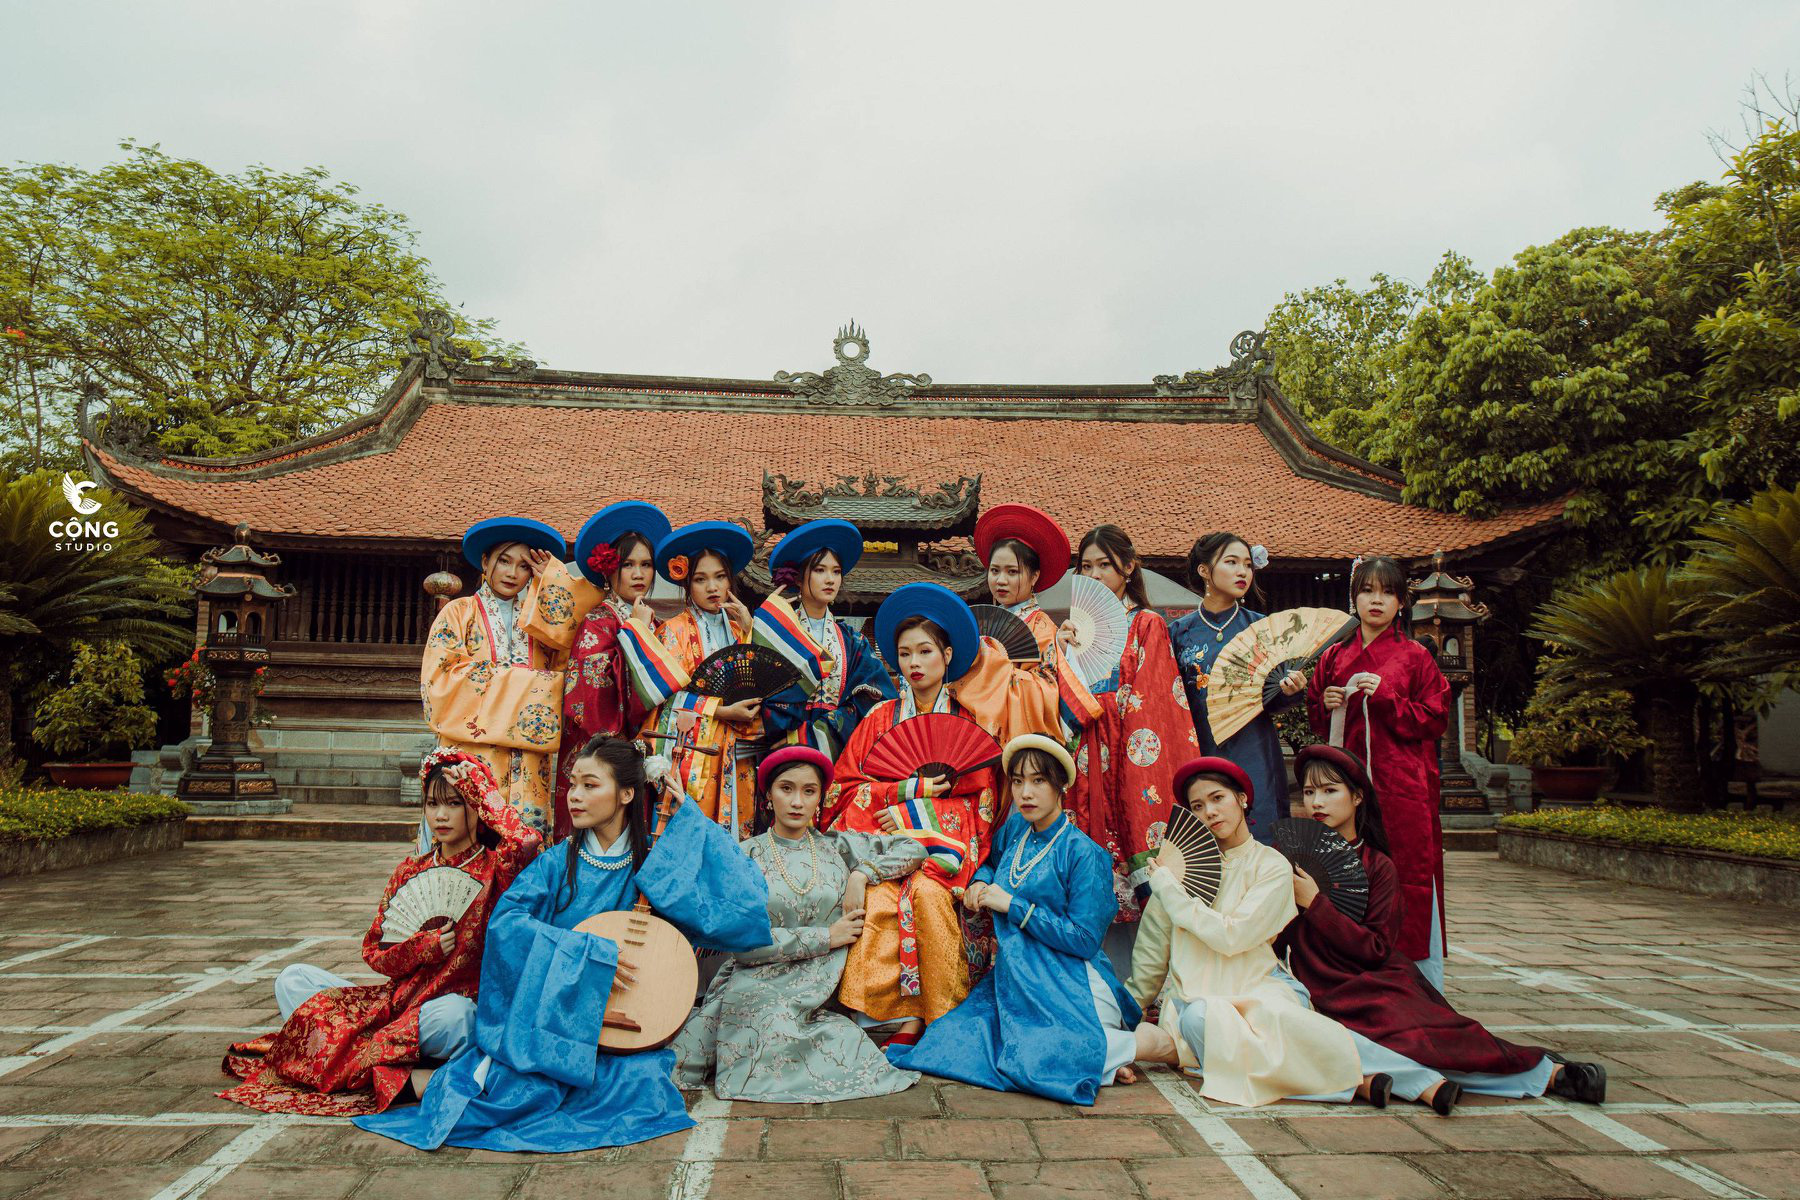 A group of female students pose for a photo in the yard at Tran Temple in Nam Dinh Province, Vietnam in this supplied yearbook photo.